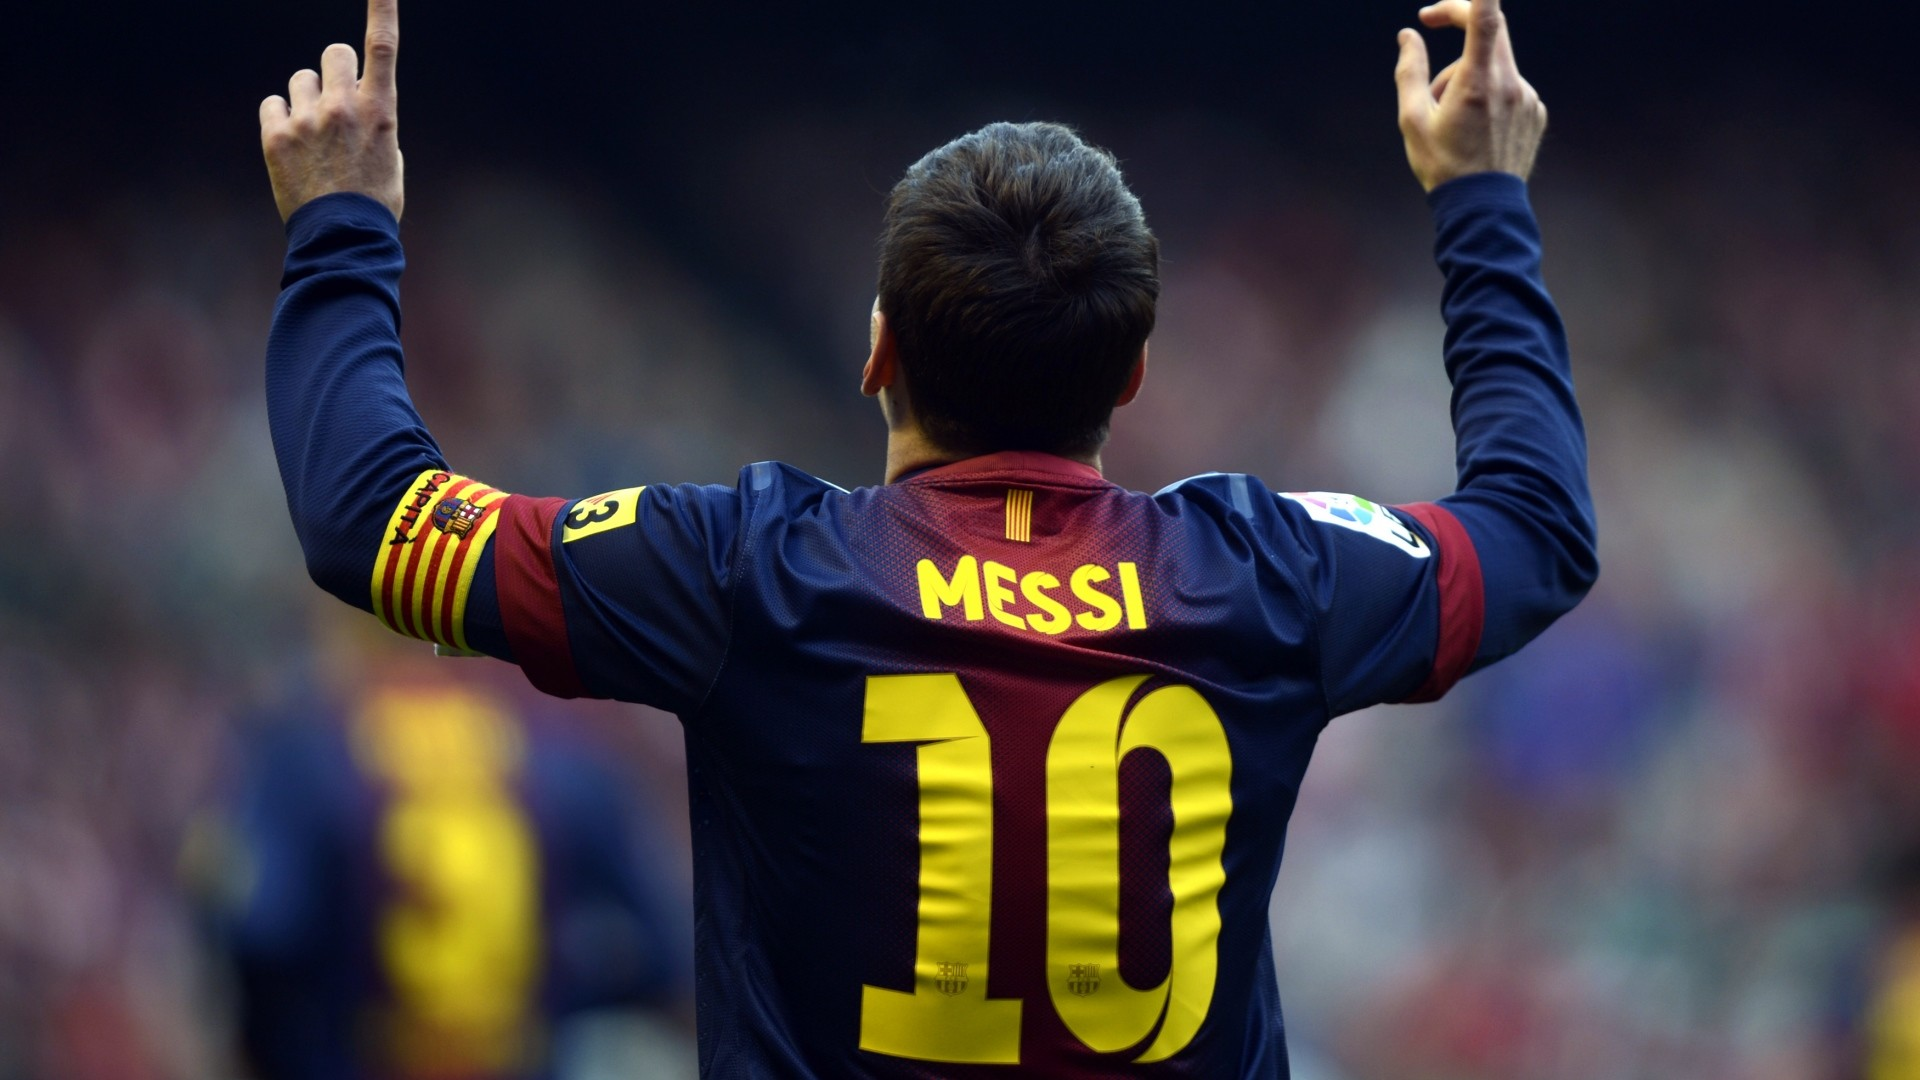 … Background Full HD 1080p. Wallpaper lionel messi, player,  back, shirt